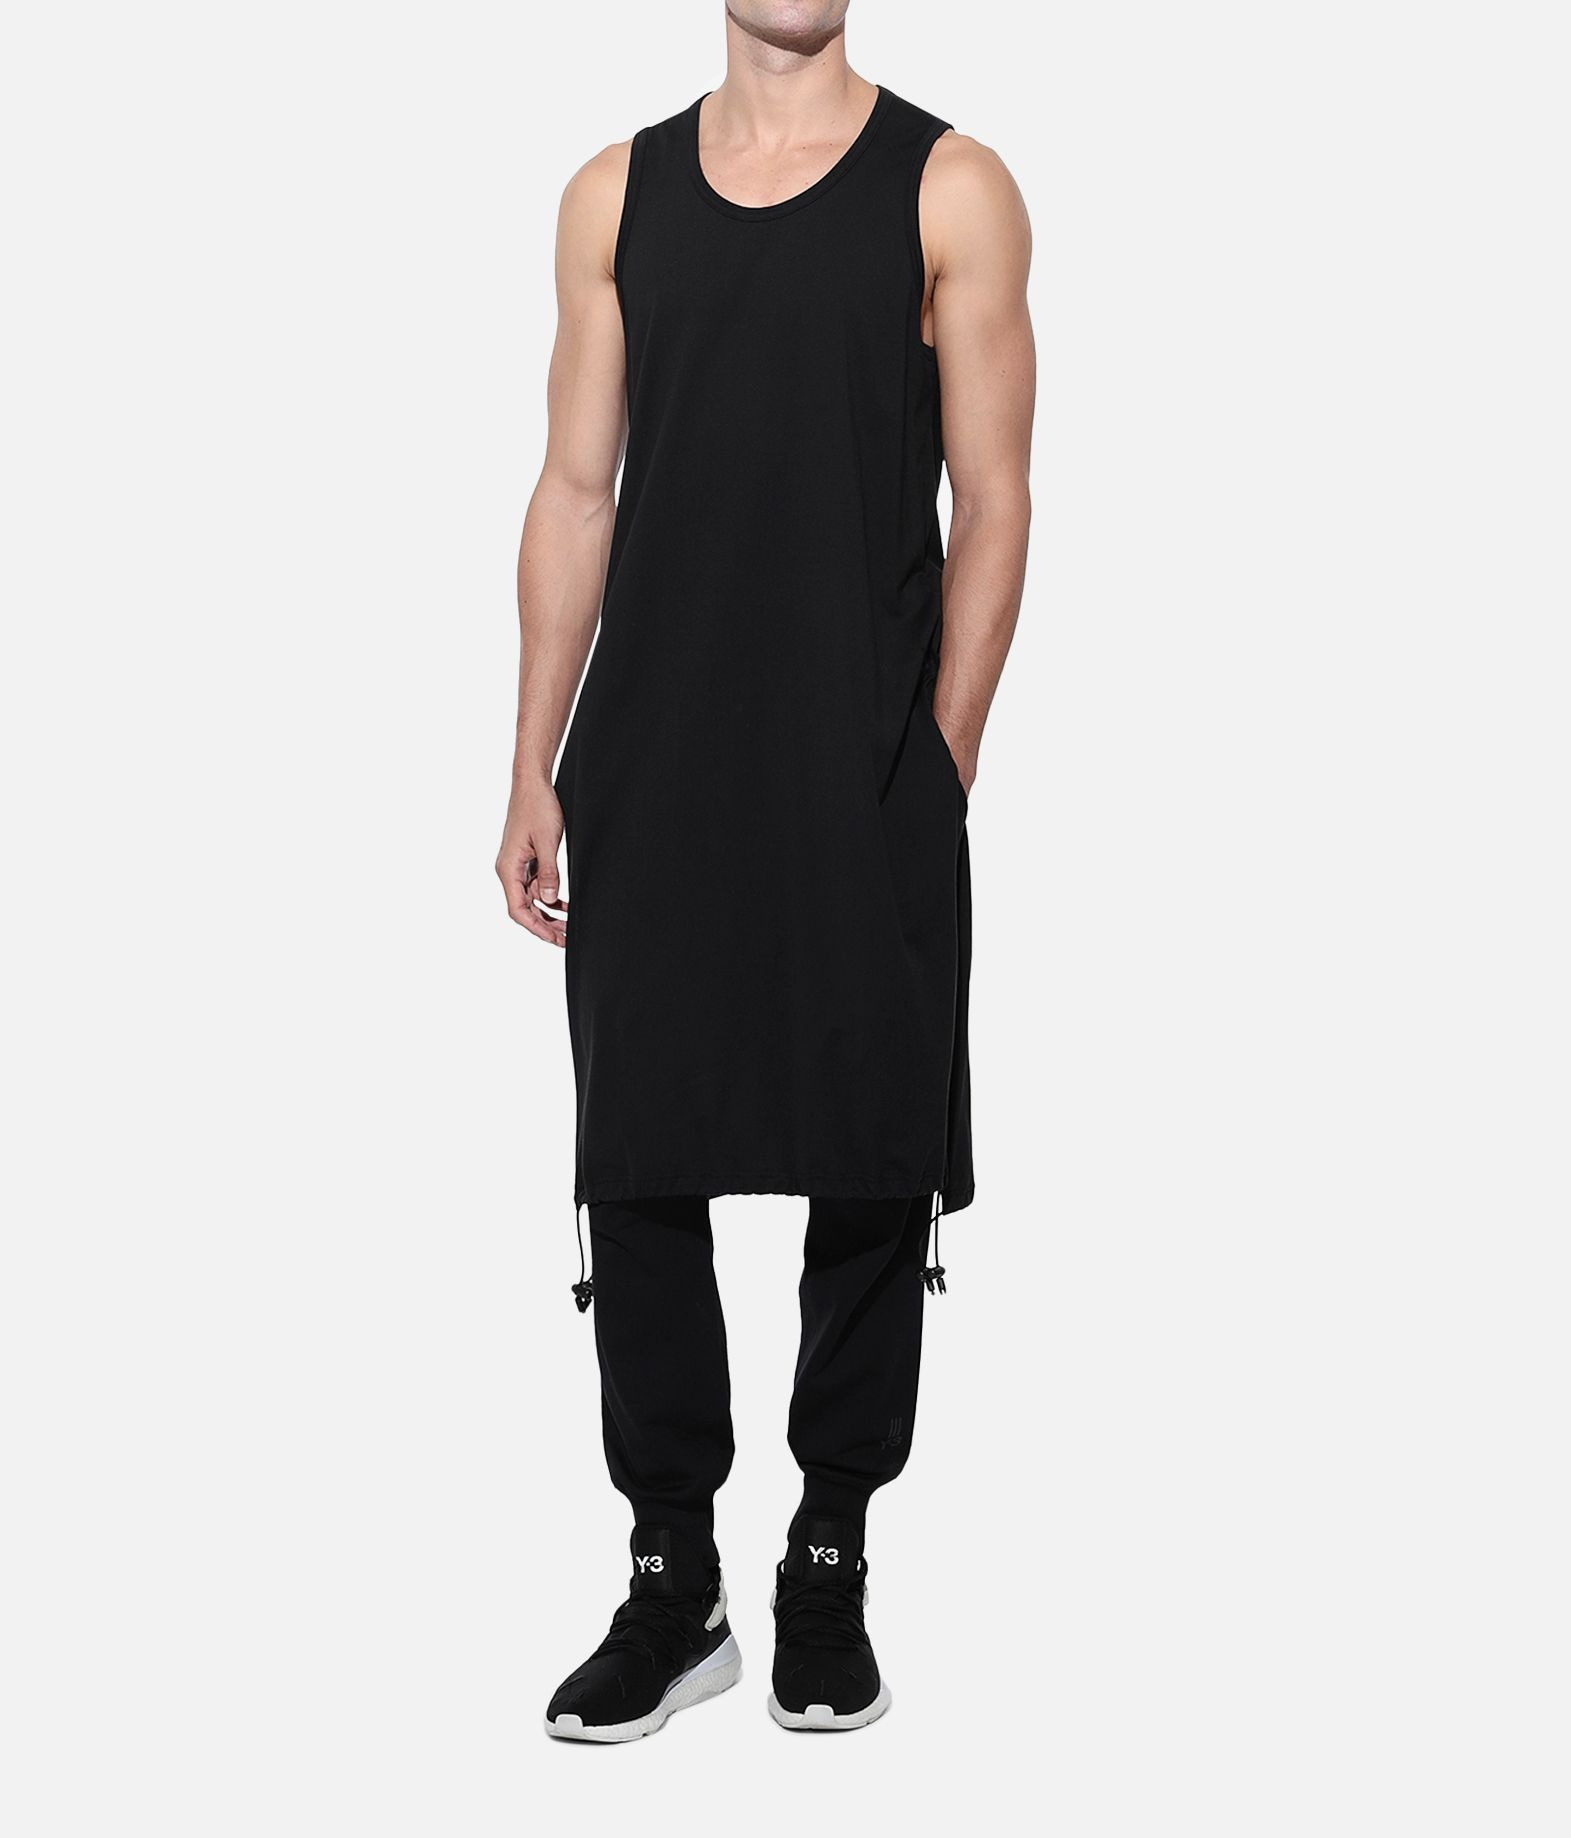 Y-3 Y-3 Drawstring Long Tank Top  Tank Man a